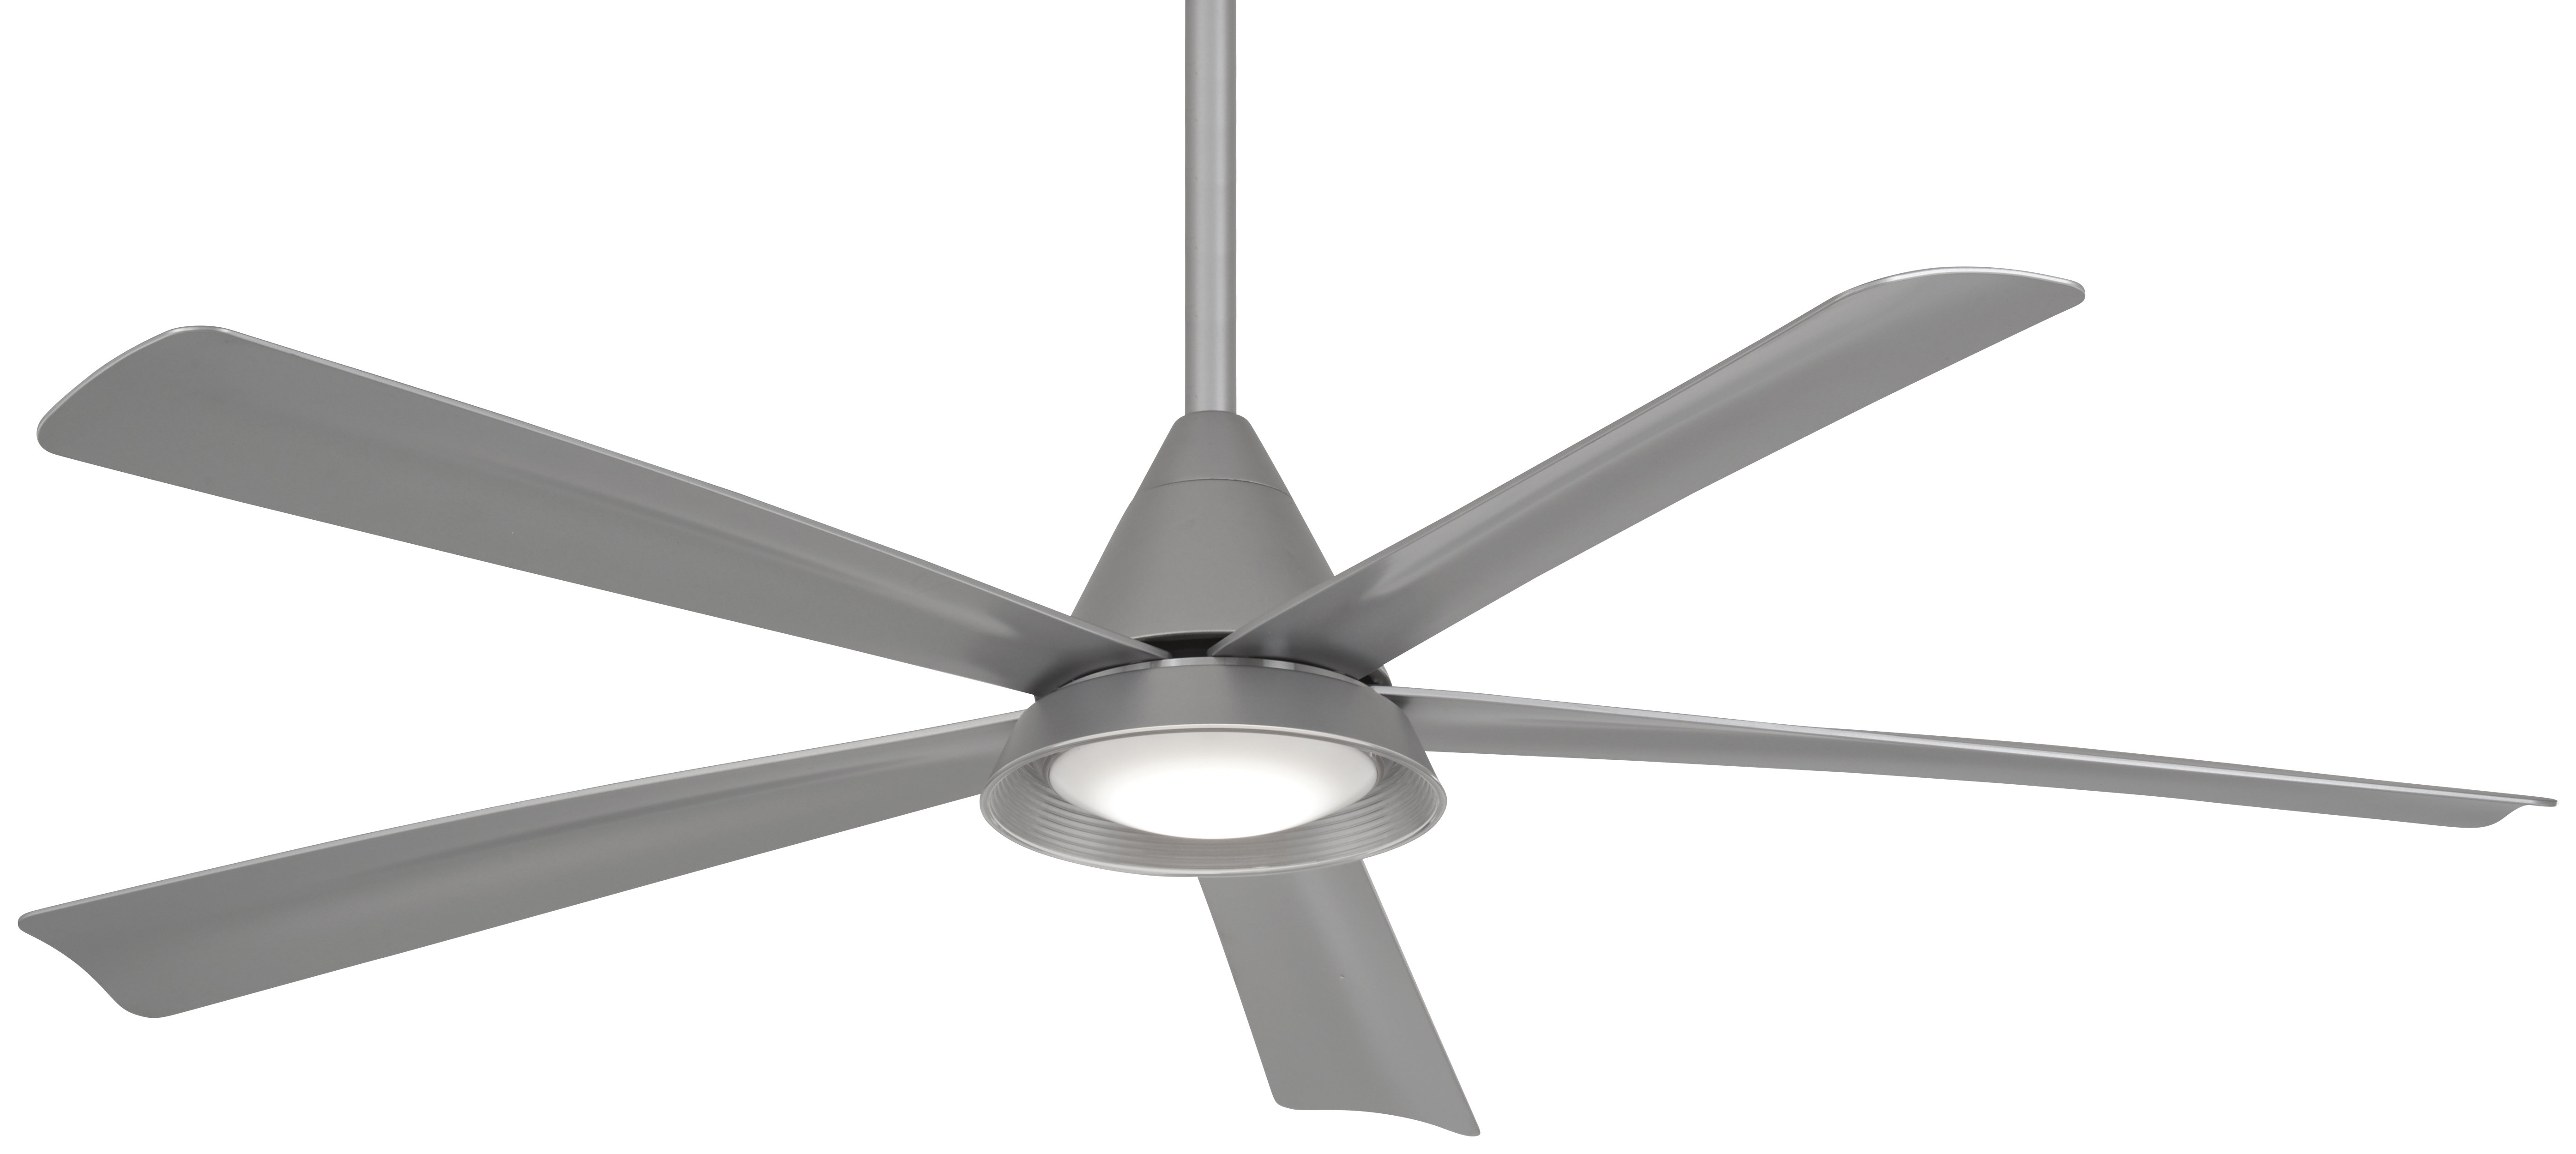 """Symbio 5 Blade Led Ceiling Fans Within Preferred 54"""" Cone 5 Blade Led Ceiling Fan With Remote (View 18 of 20)"""